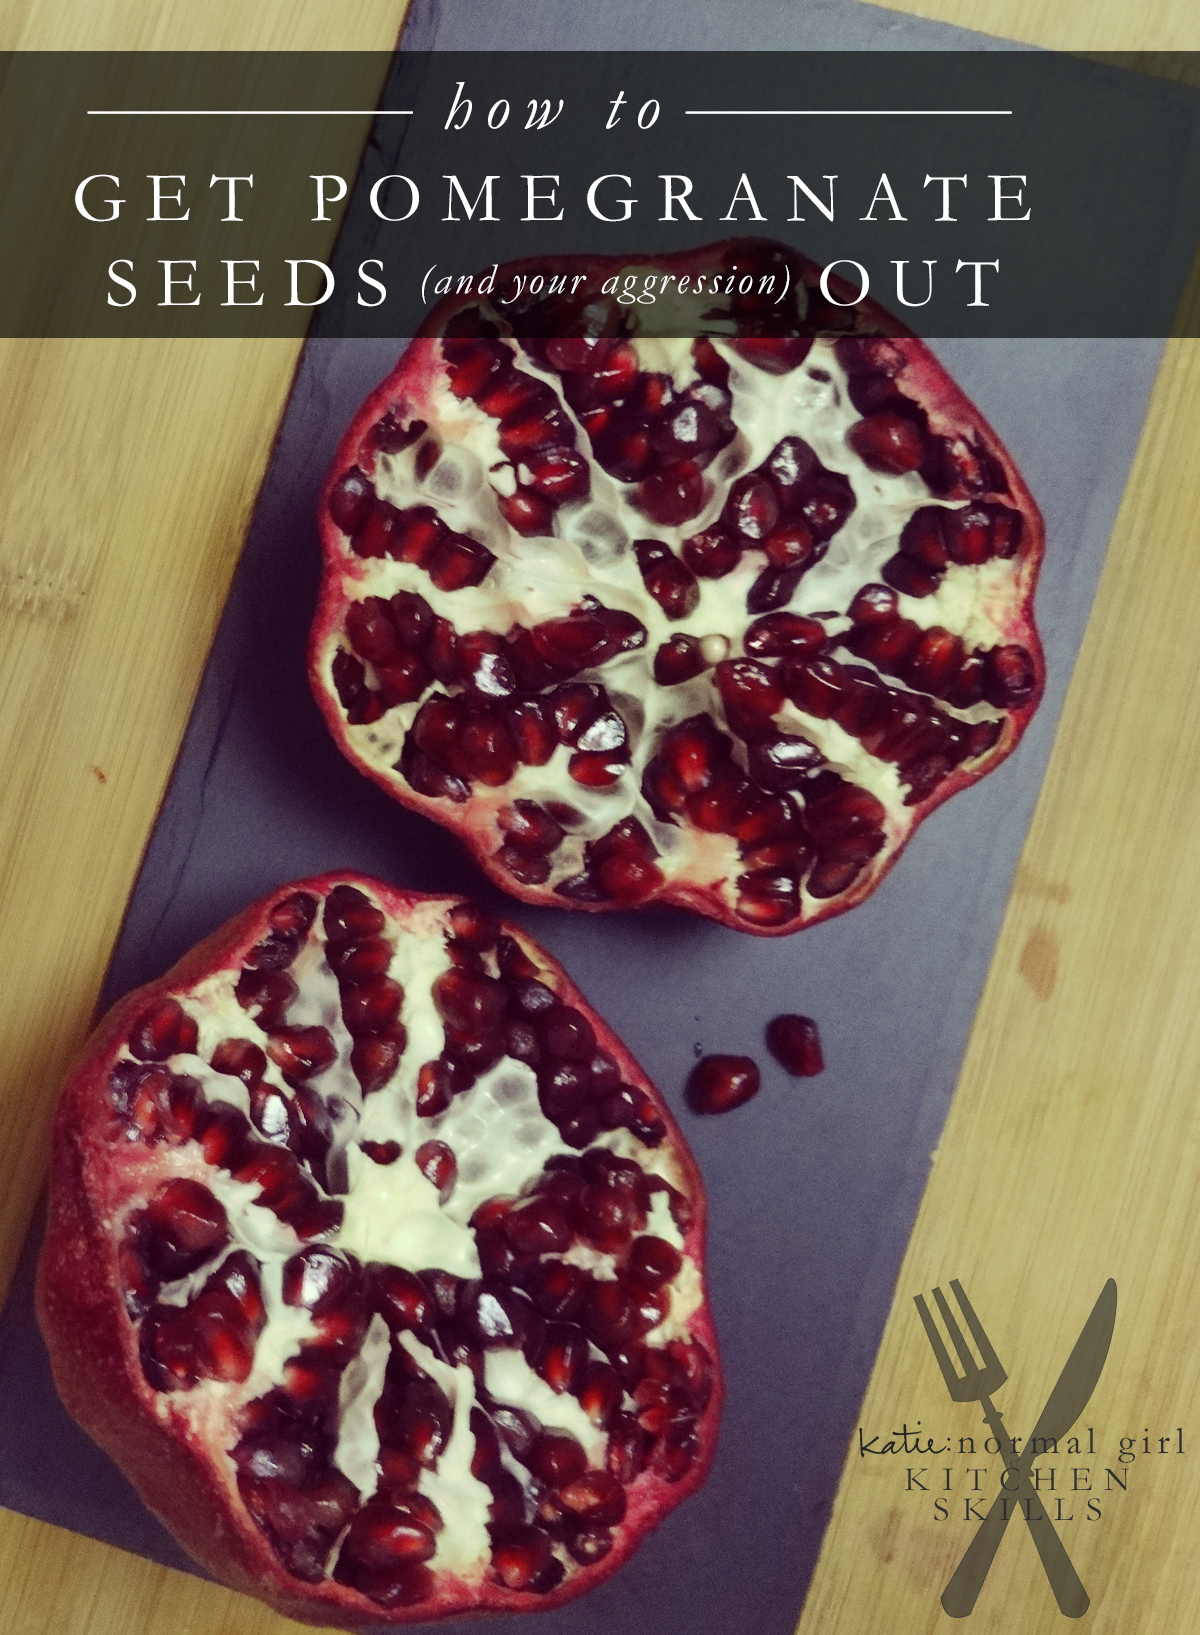 How to get pomegranate seed out from katienormalgirl.com | #howto #lifeskills #food